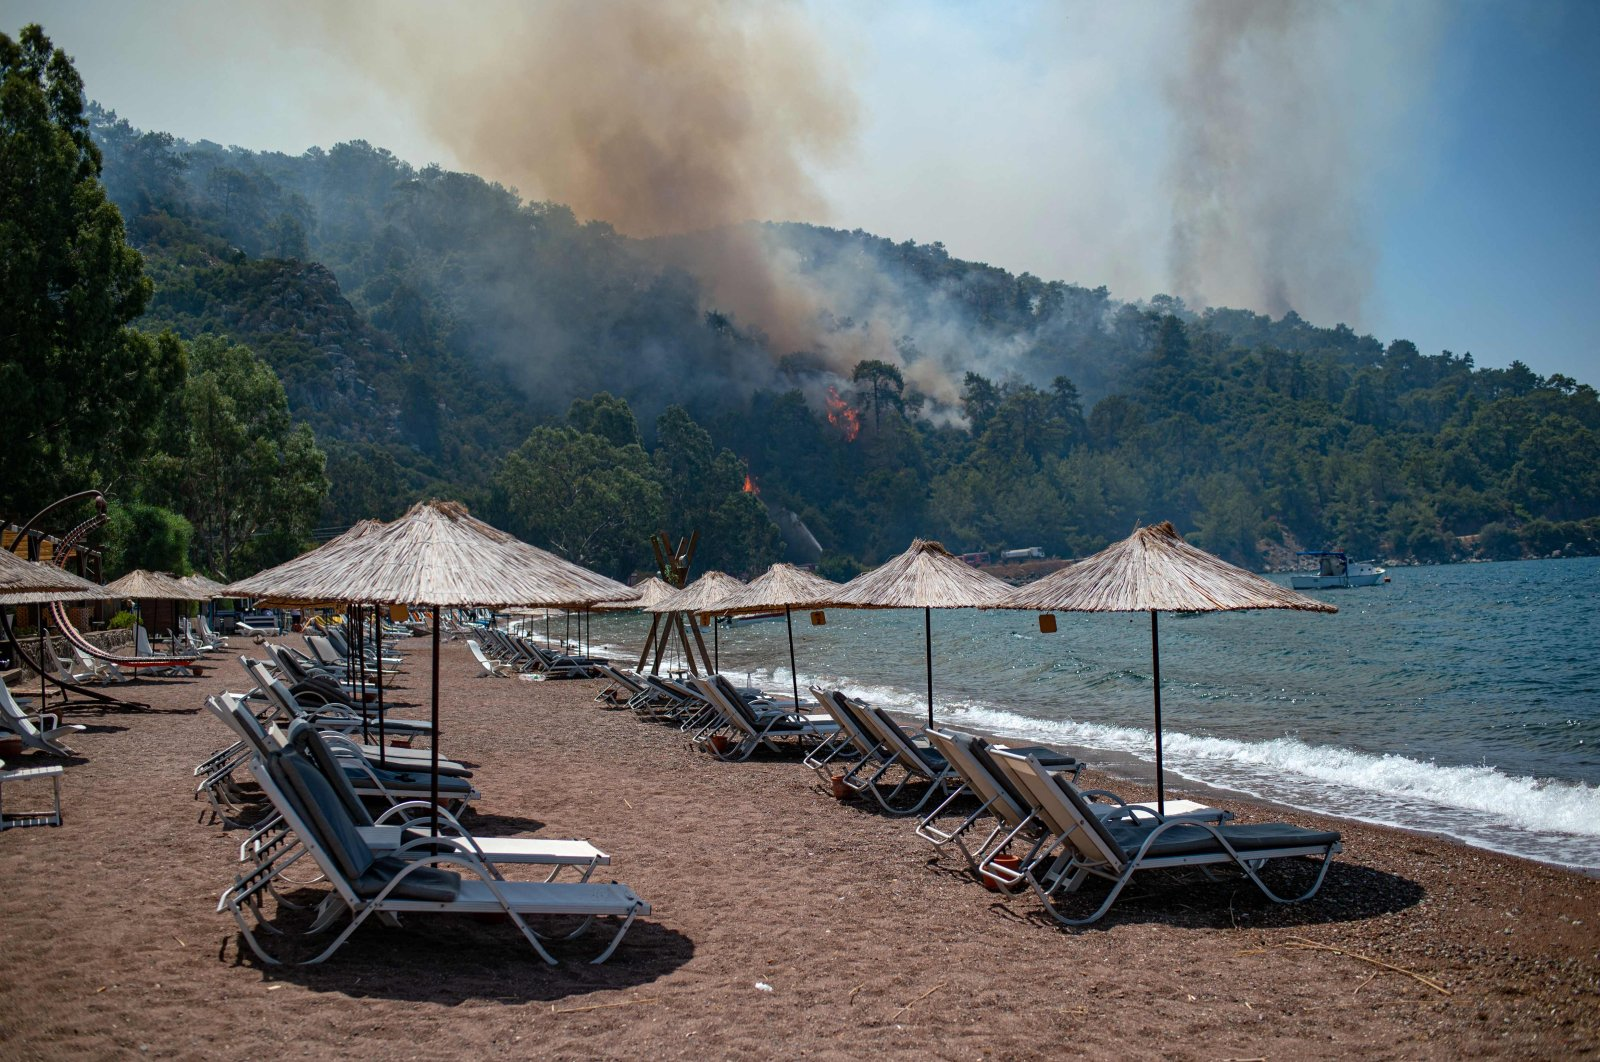 Deck chairs are seen on a beach in front of smoke and flames rising from a forest fire in the Marmaris district of Muğla province, southwestern Turkey, Aug. 3, 2021. (AFP Photo)